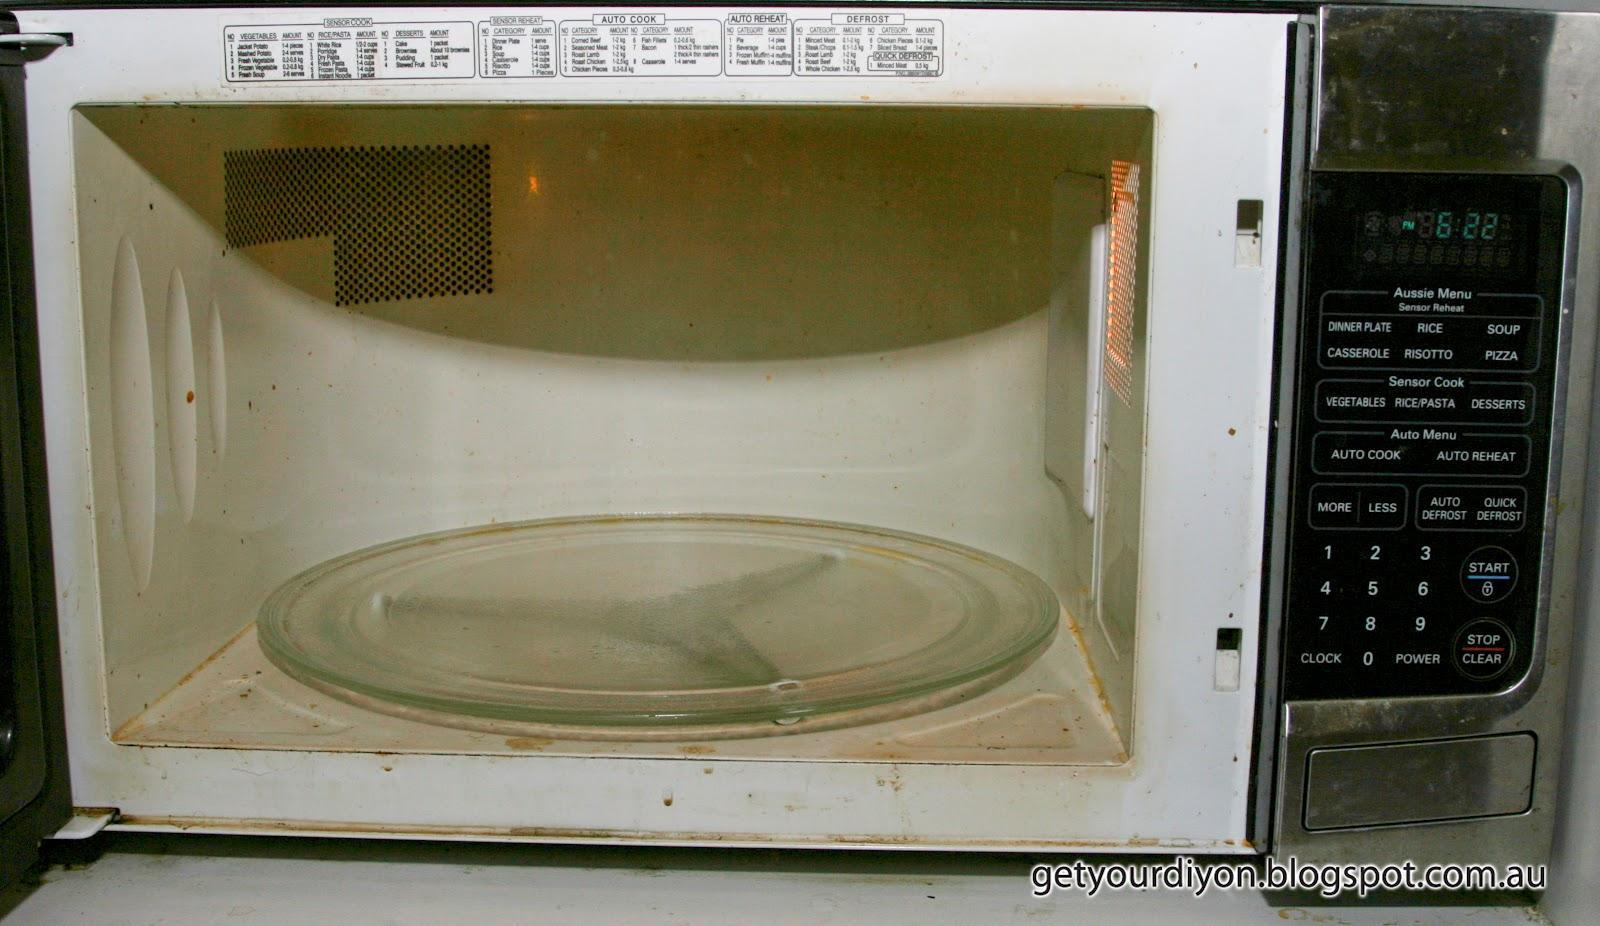 Dirty Microwave Oven ~ Dirty microwave pictures imgkid the image kid